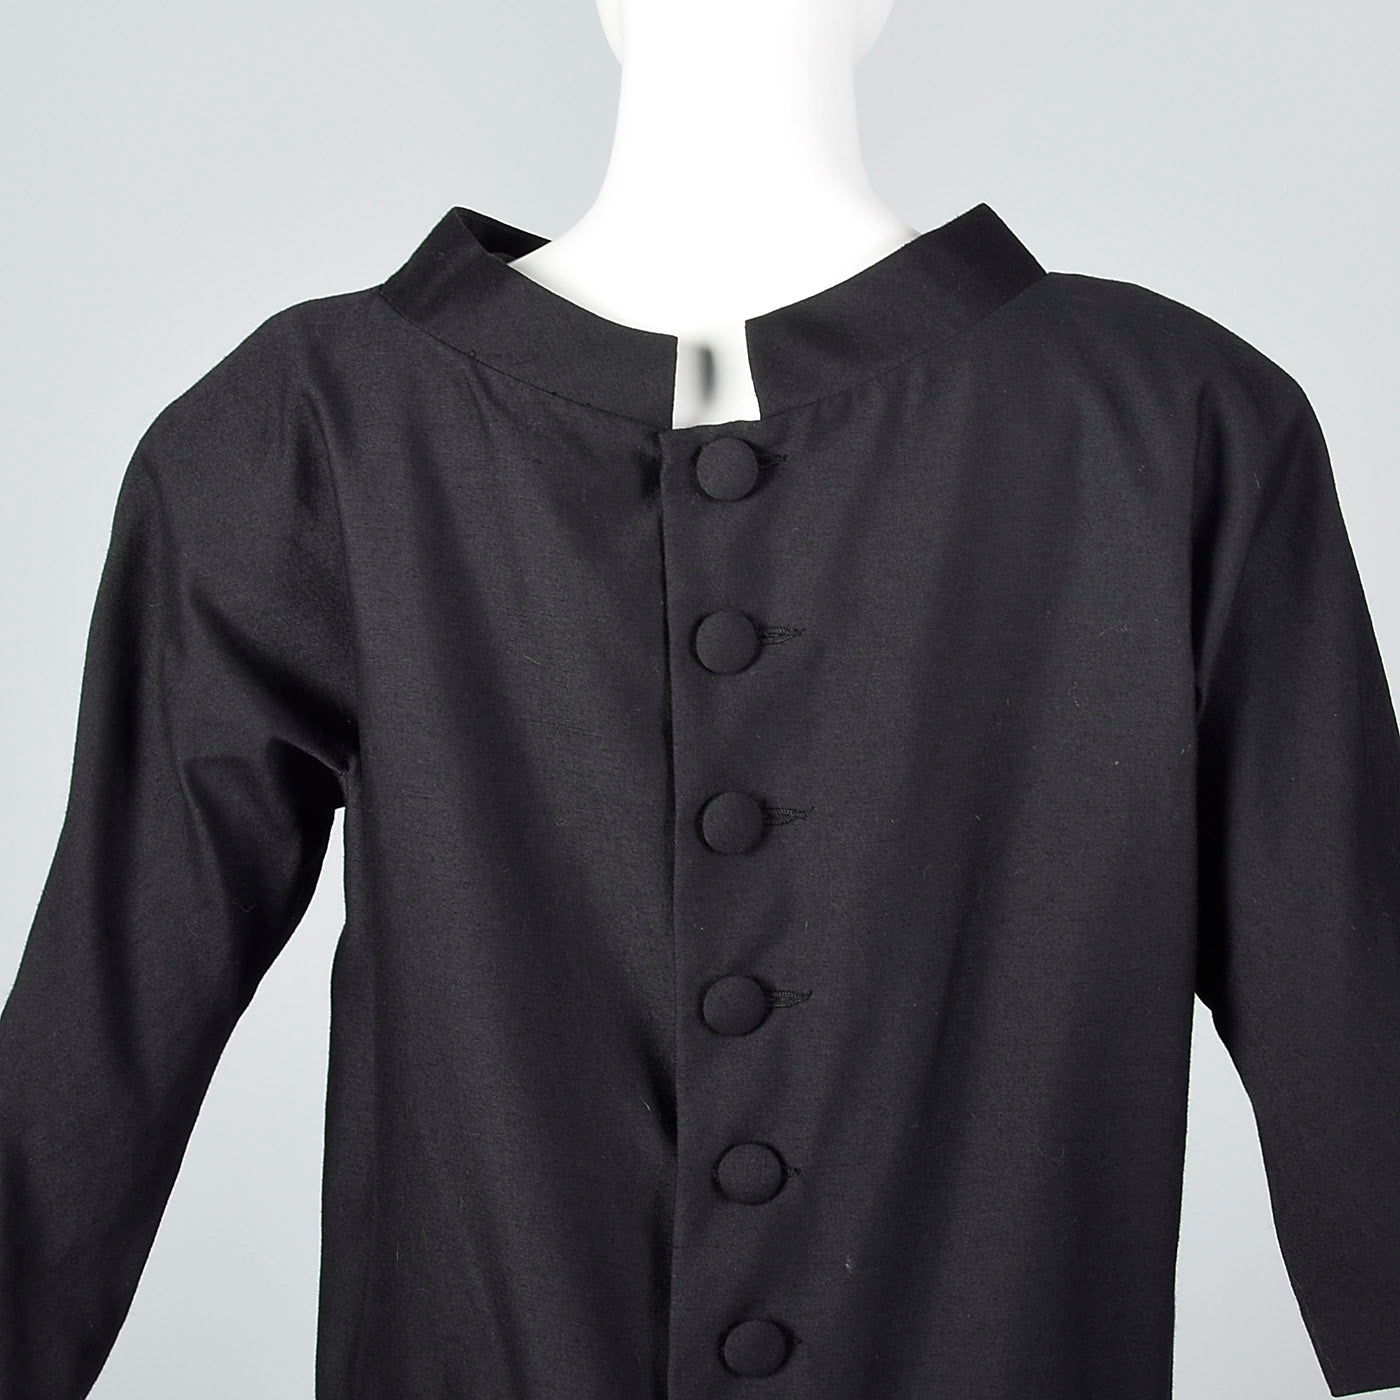 1950s Suzy Perette Avant Garde Black Wool Sack Dress